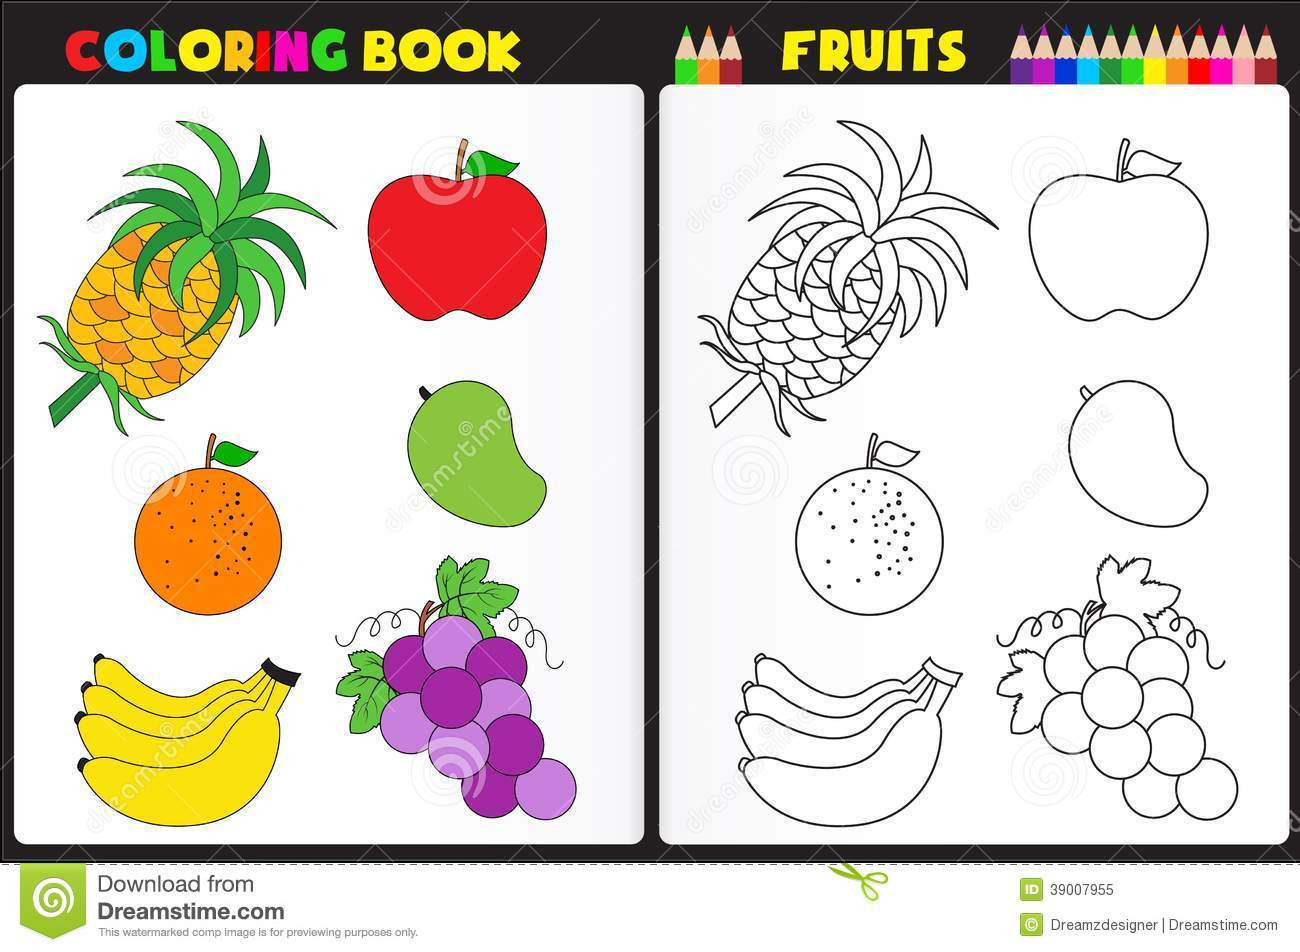 Coloring book pictures of vegetables - Coloring Book Page Fruits Royalty Free Stock Photo